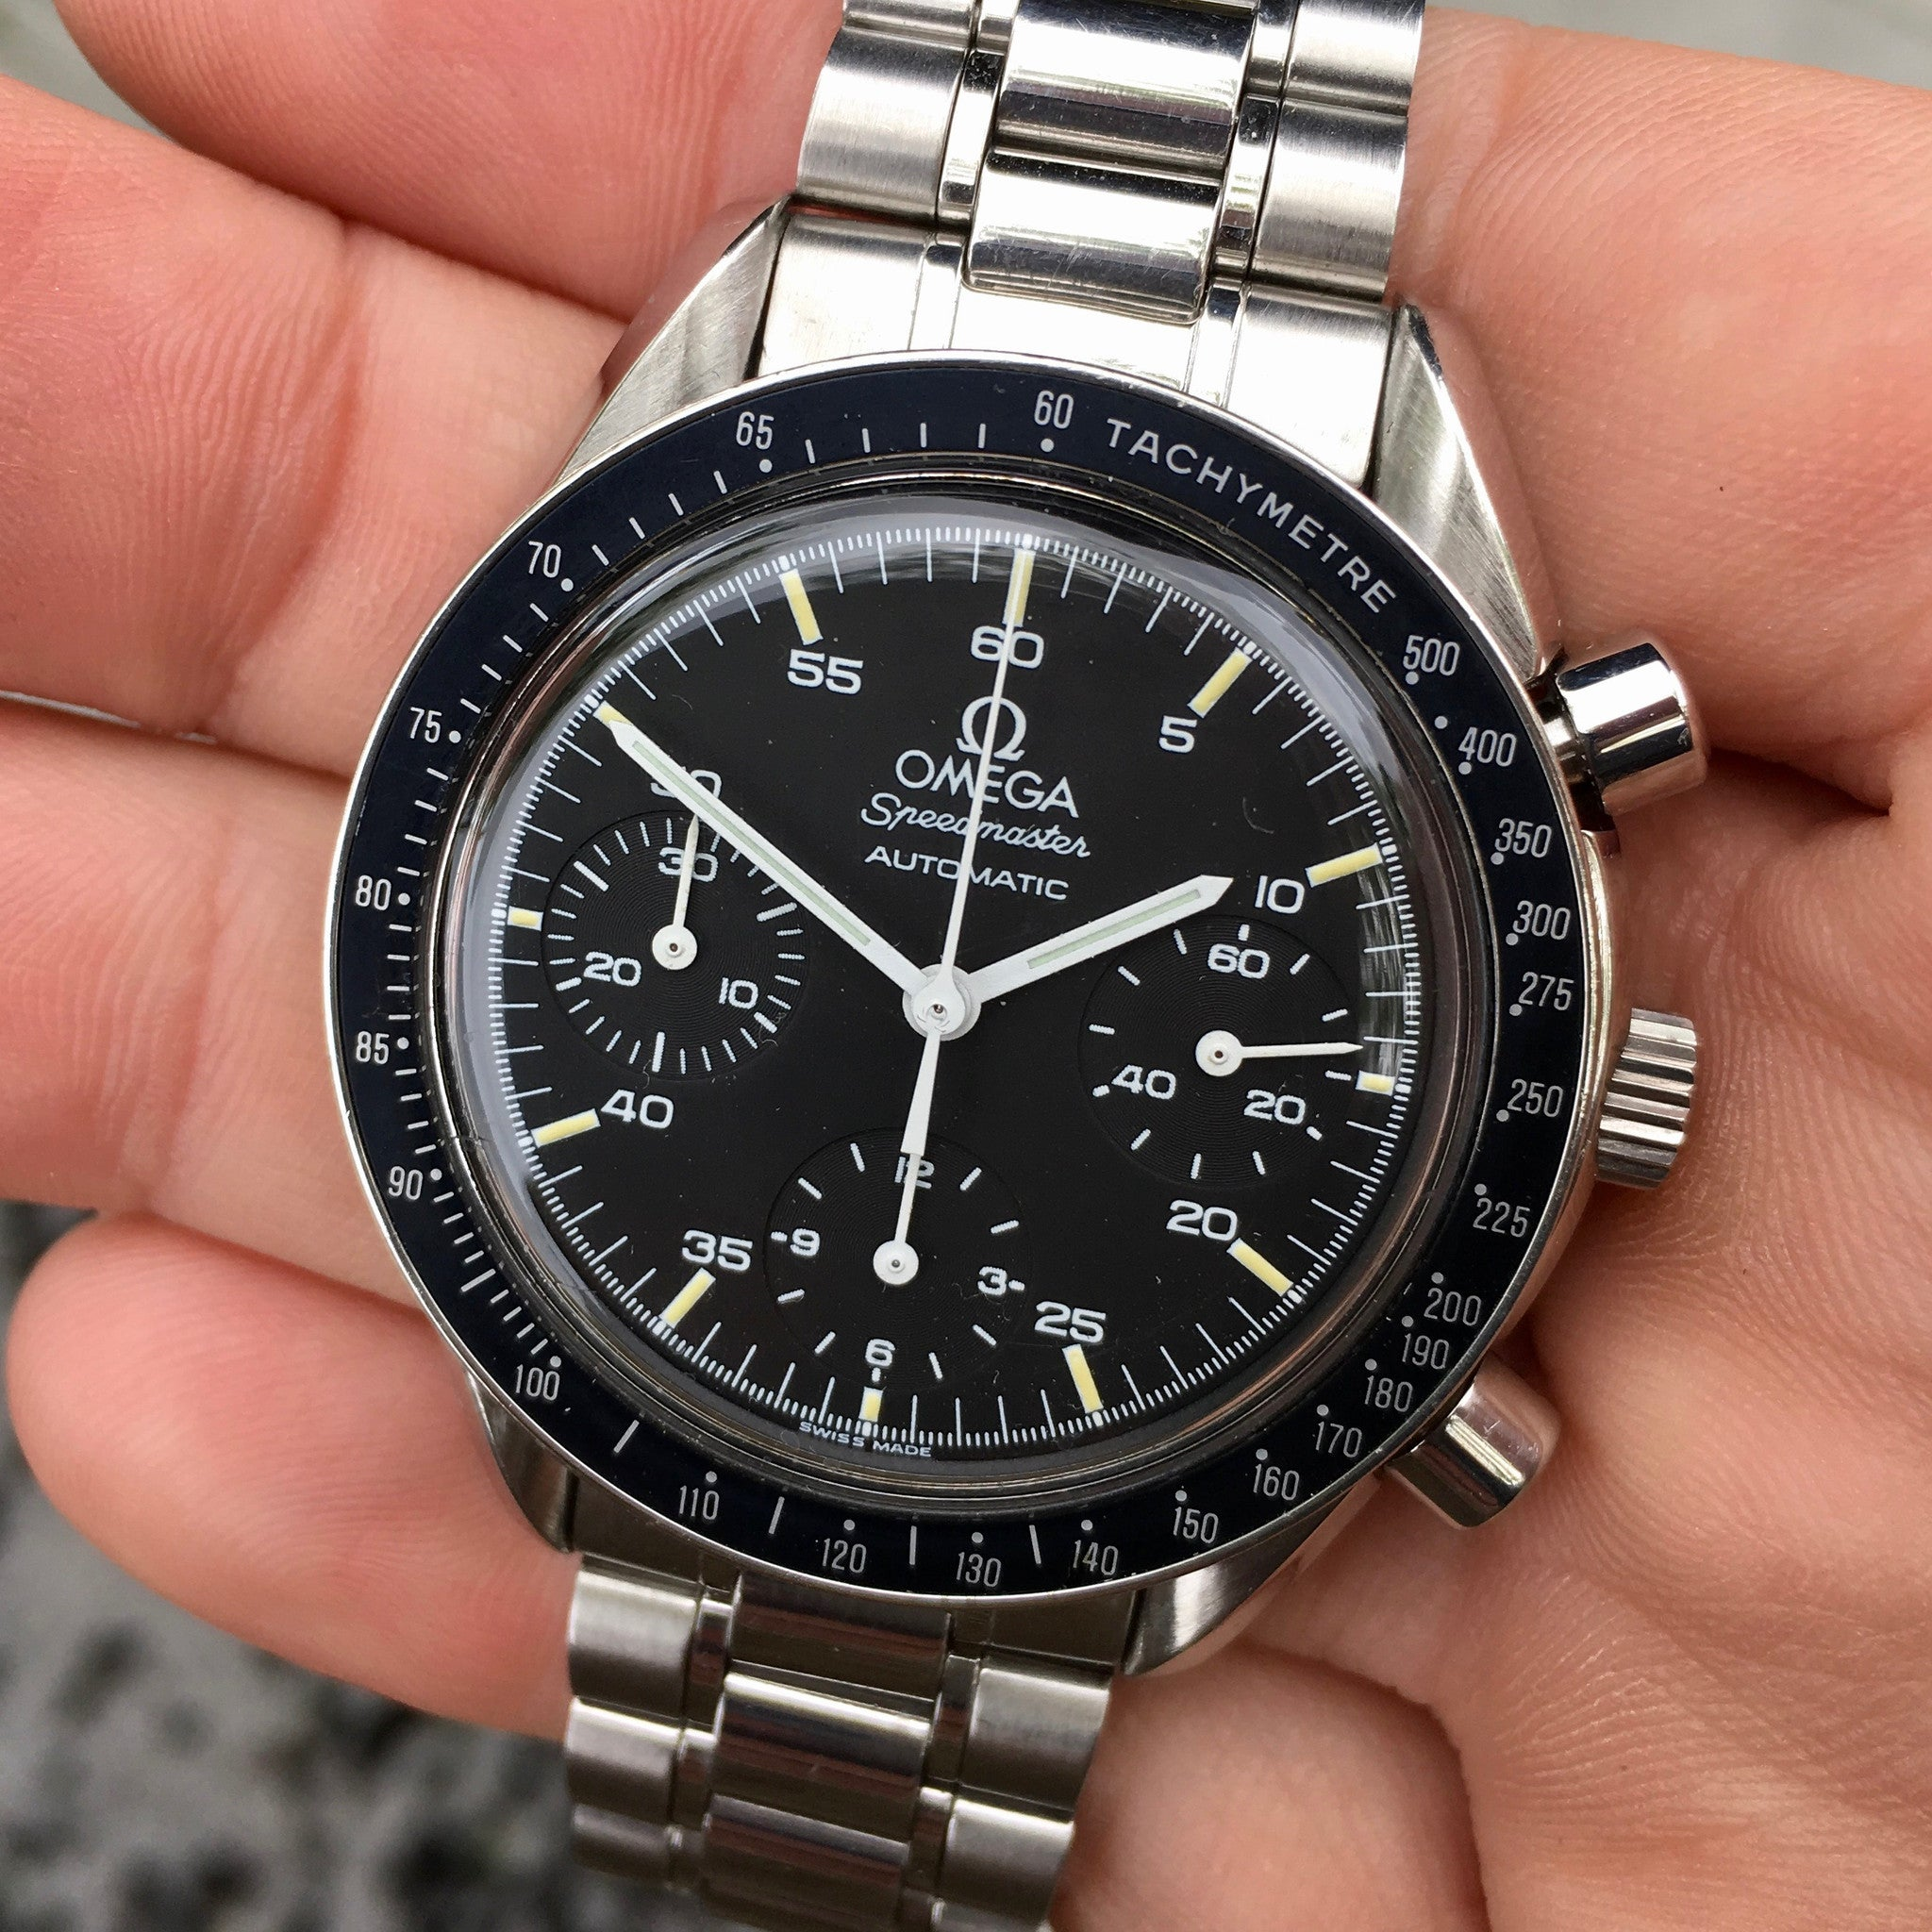 Omega Speedmaster 175.0032 Automatic Chronograph Cal. 2890 Black Dial Wristwatch - Hashtag Watch Company